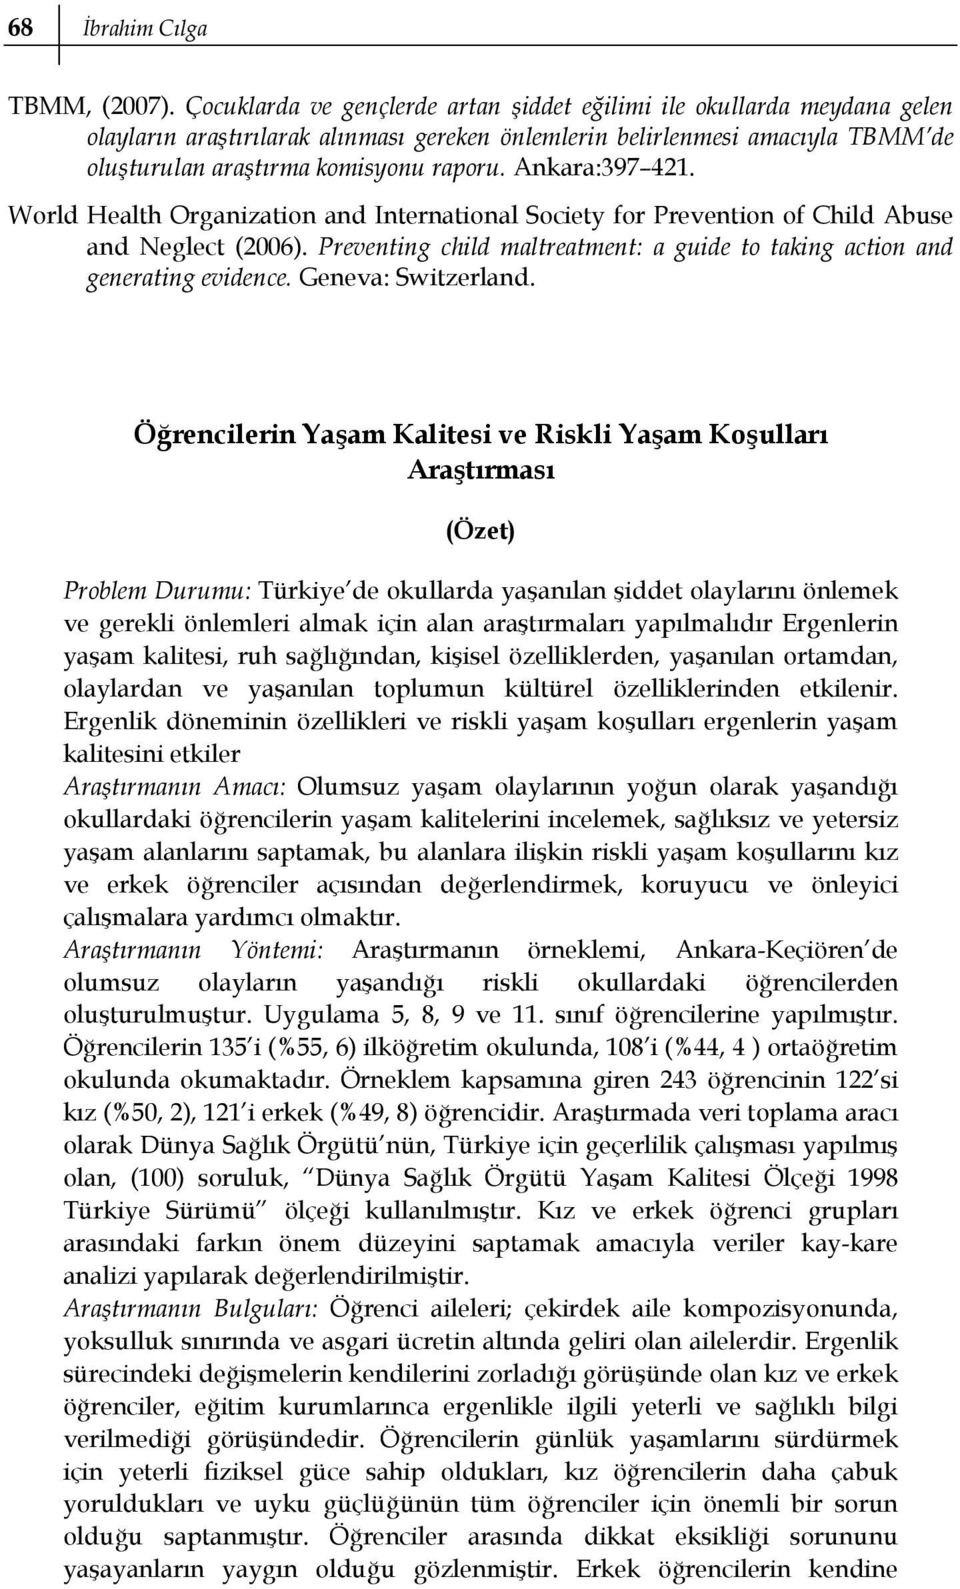 Ankara:397 421. World Health Organization and International Society for Prevention of Child Abuse and Neglect (2006). Preventing child maltreatment: a guide to taking action and generating evidence.